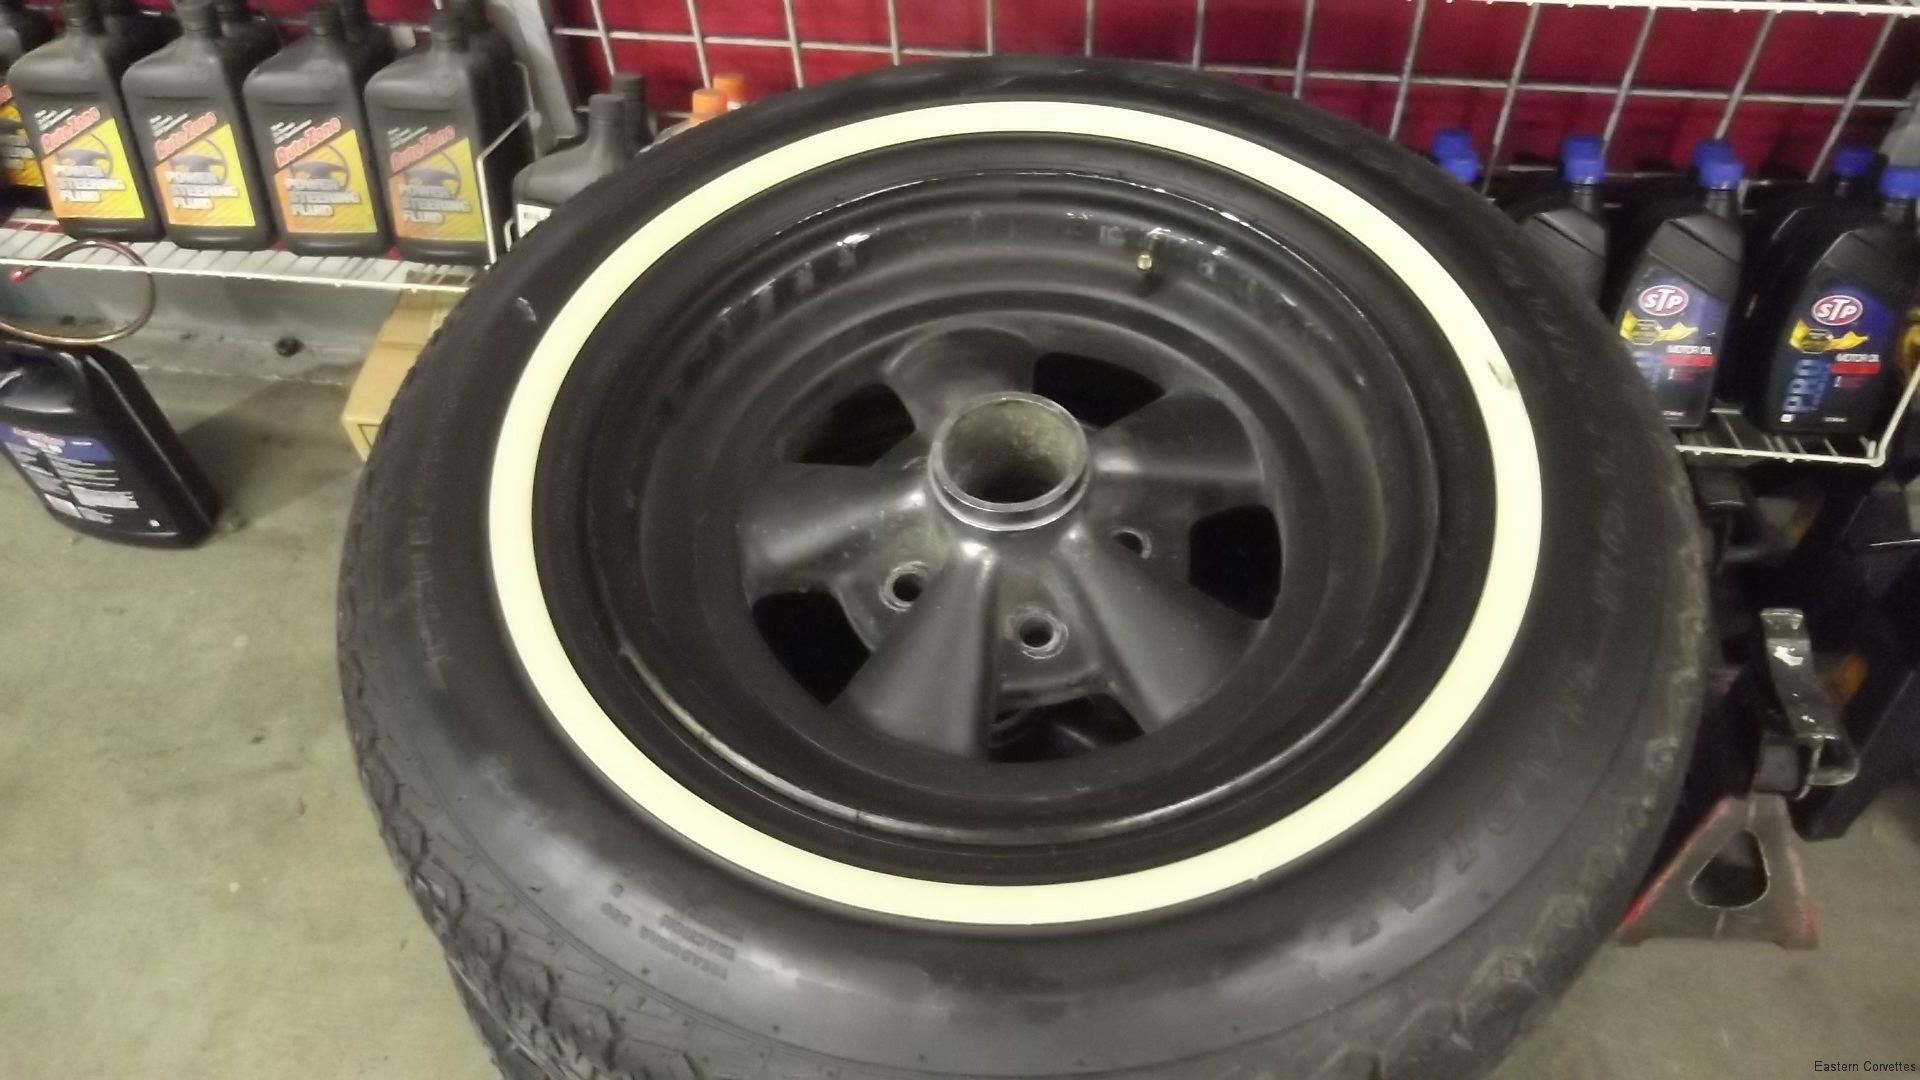 102 aftermarket wheels - multi lug - with painted edges to appear more original